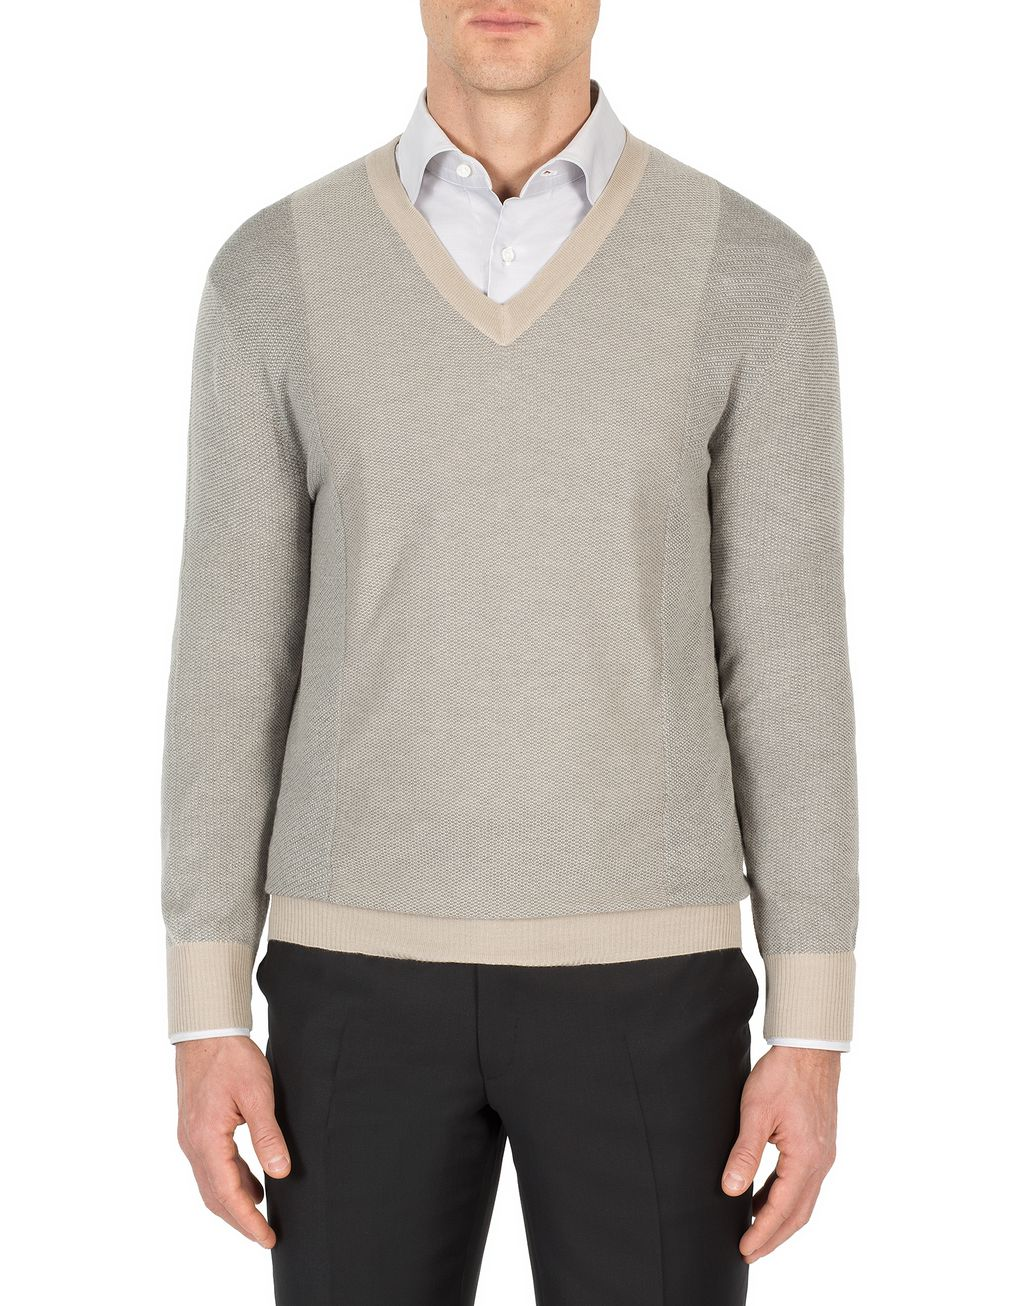 BRIONI Sand and Gray V-Neck Micro Jacquard Sweater Knitwear Man r